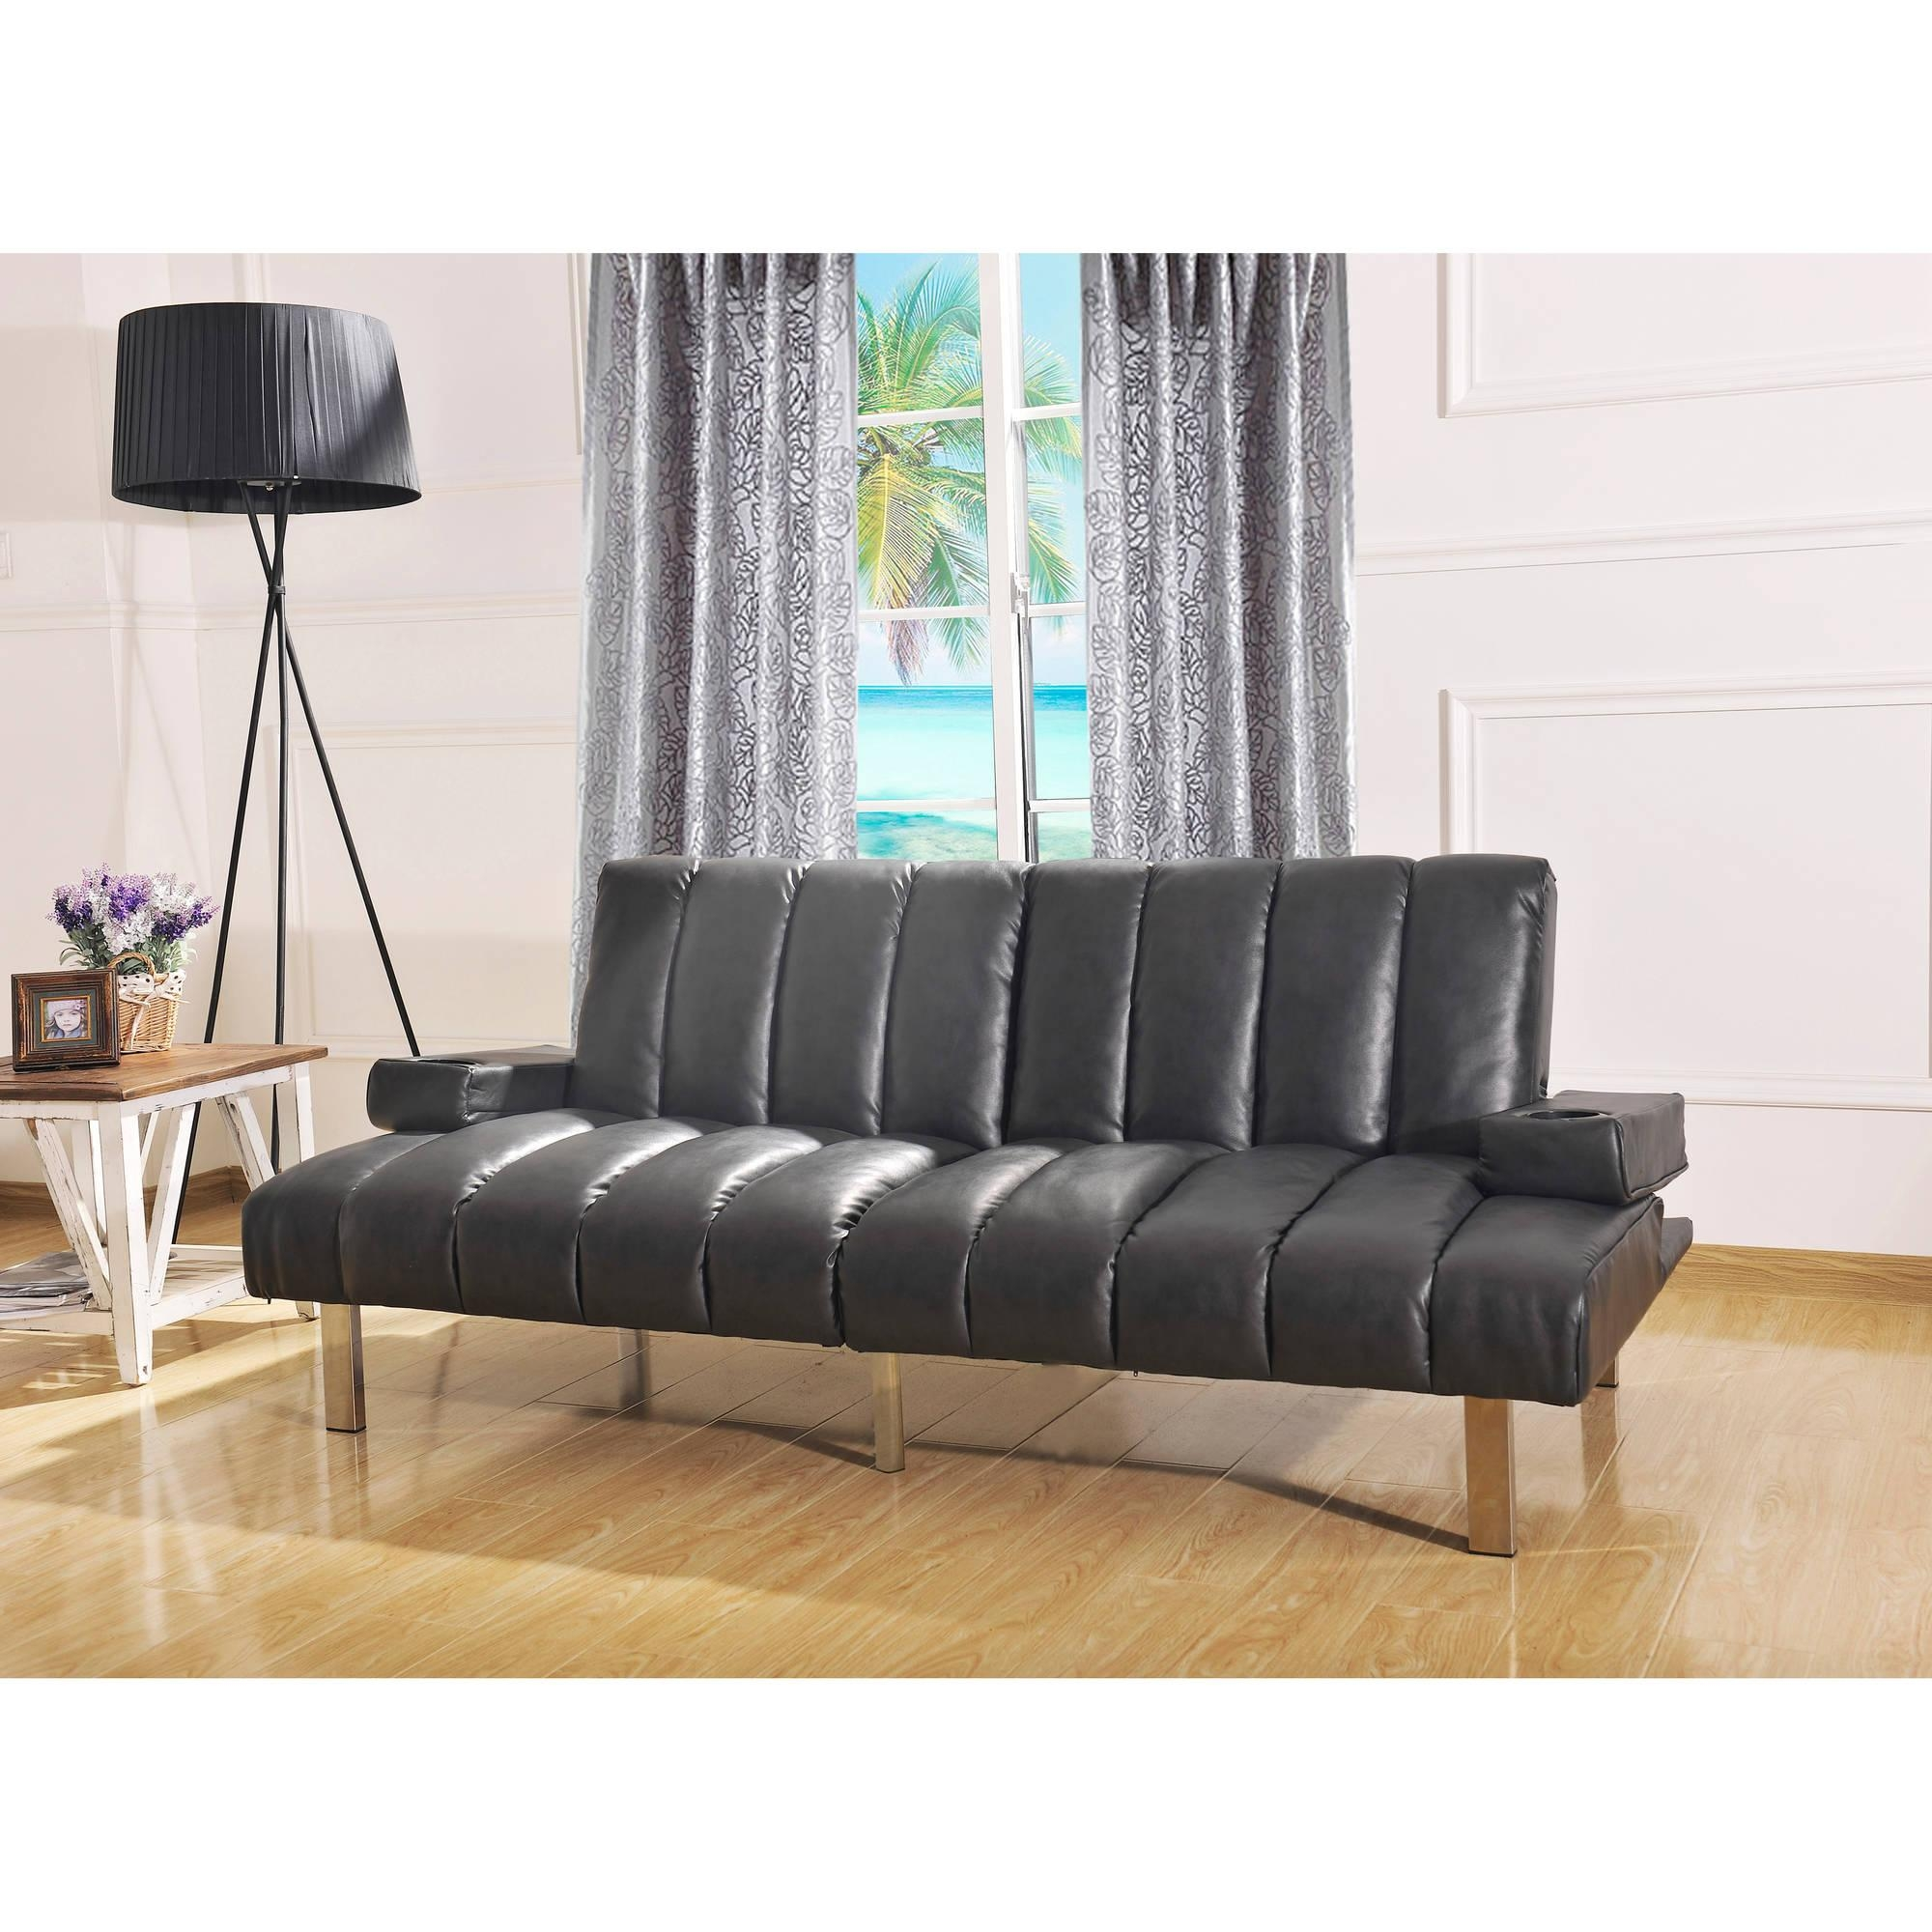 Mainstays Theater Futon, Black – Walmart With Regard To Mainstay Sofas (Image 20 of 20)